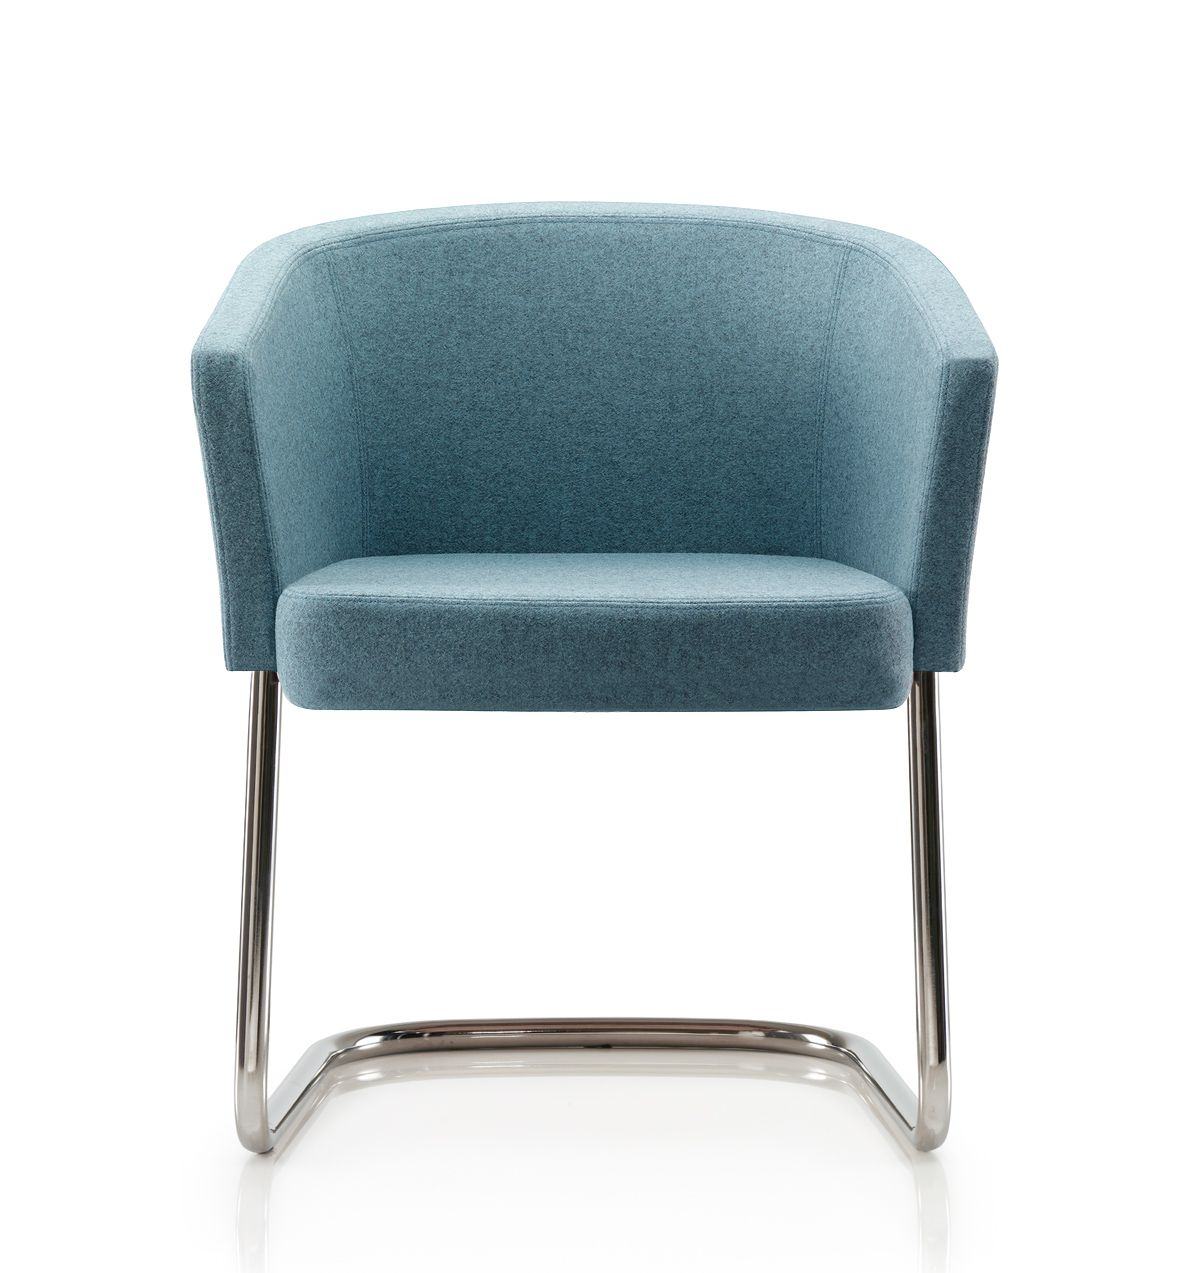 Dolce lounge chair with cantilever base | Harmony Collection | Pinterest